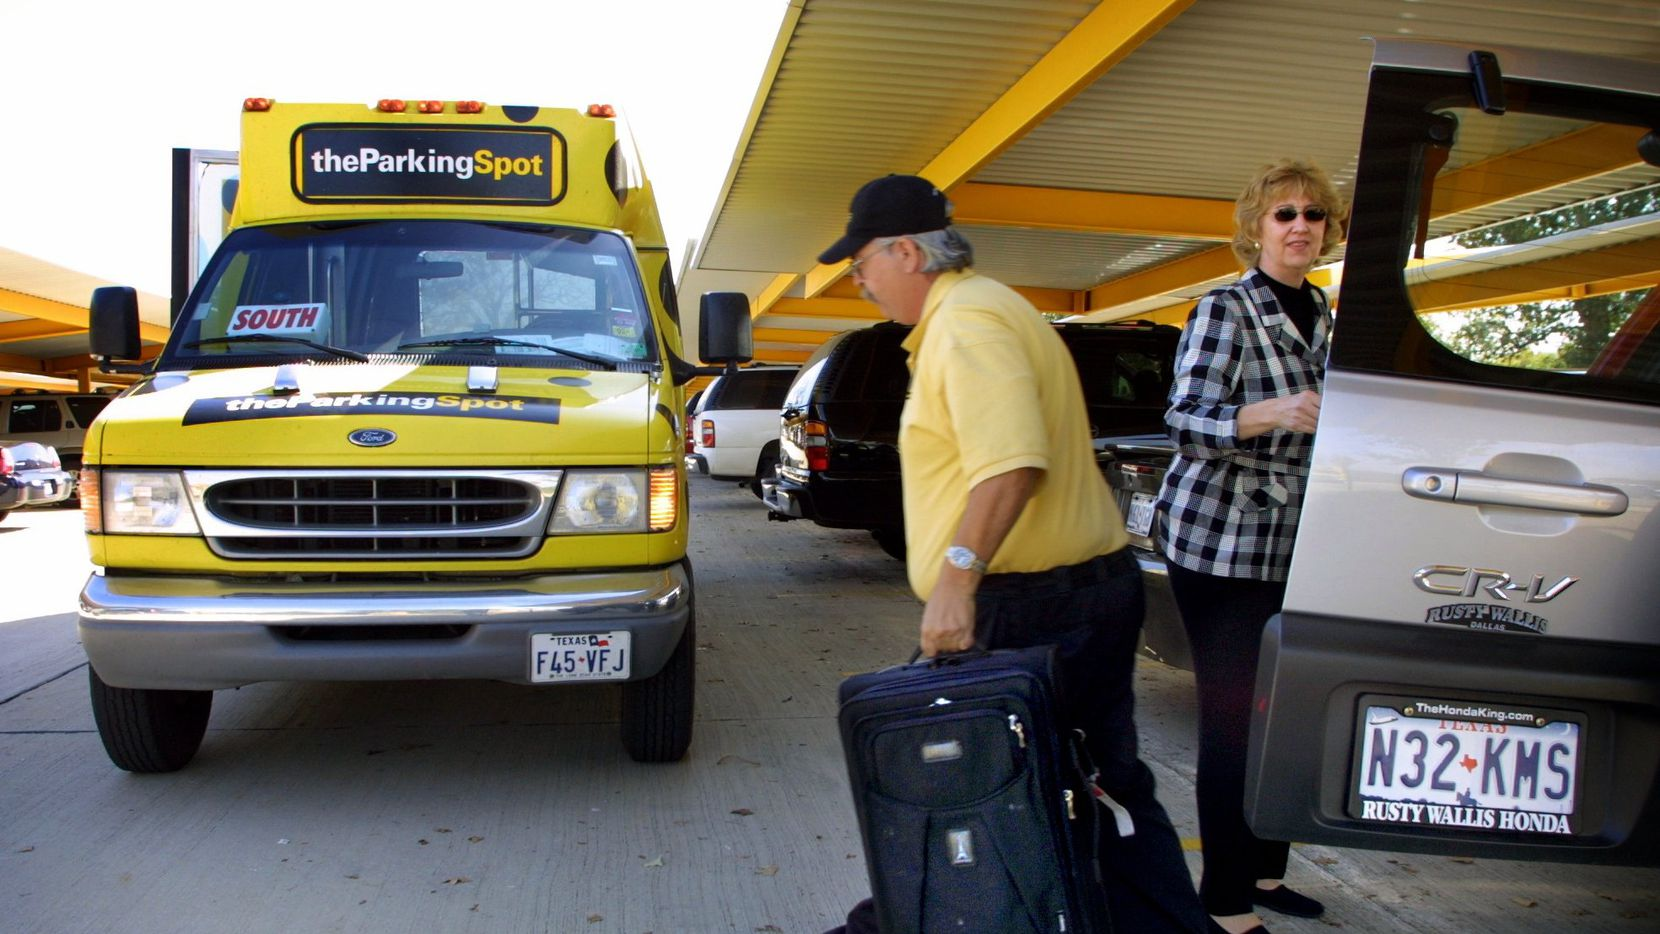 The Parking Spot driver James Rogers helps Deborah Grotke of Dallas load her bags onto a shuttle at the company's lot near DFW International Airport.